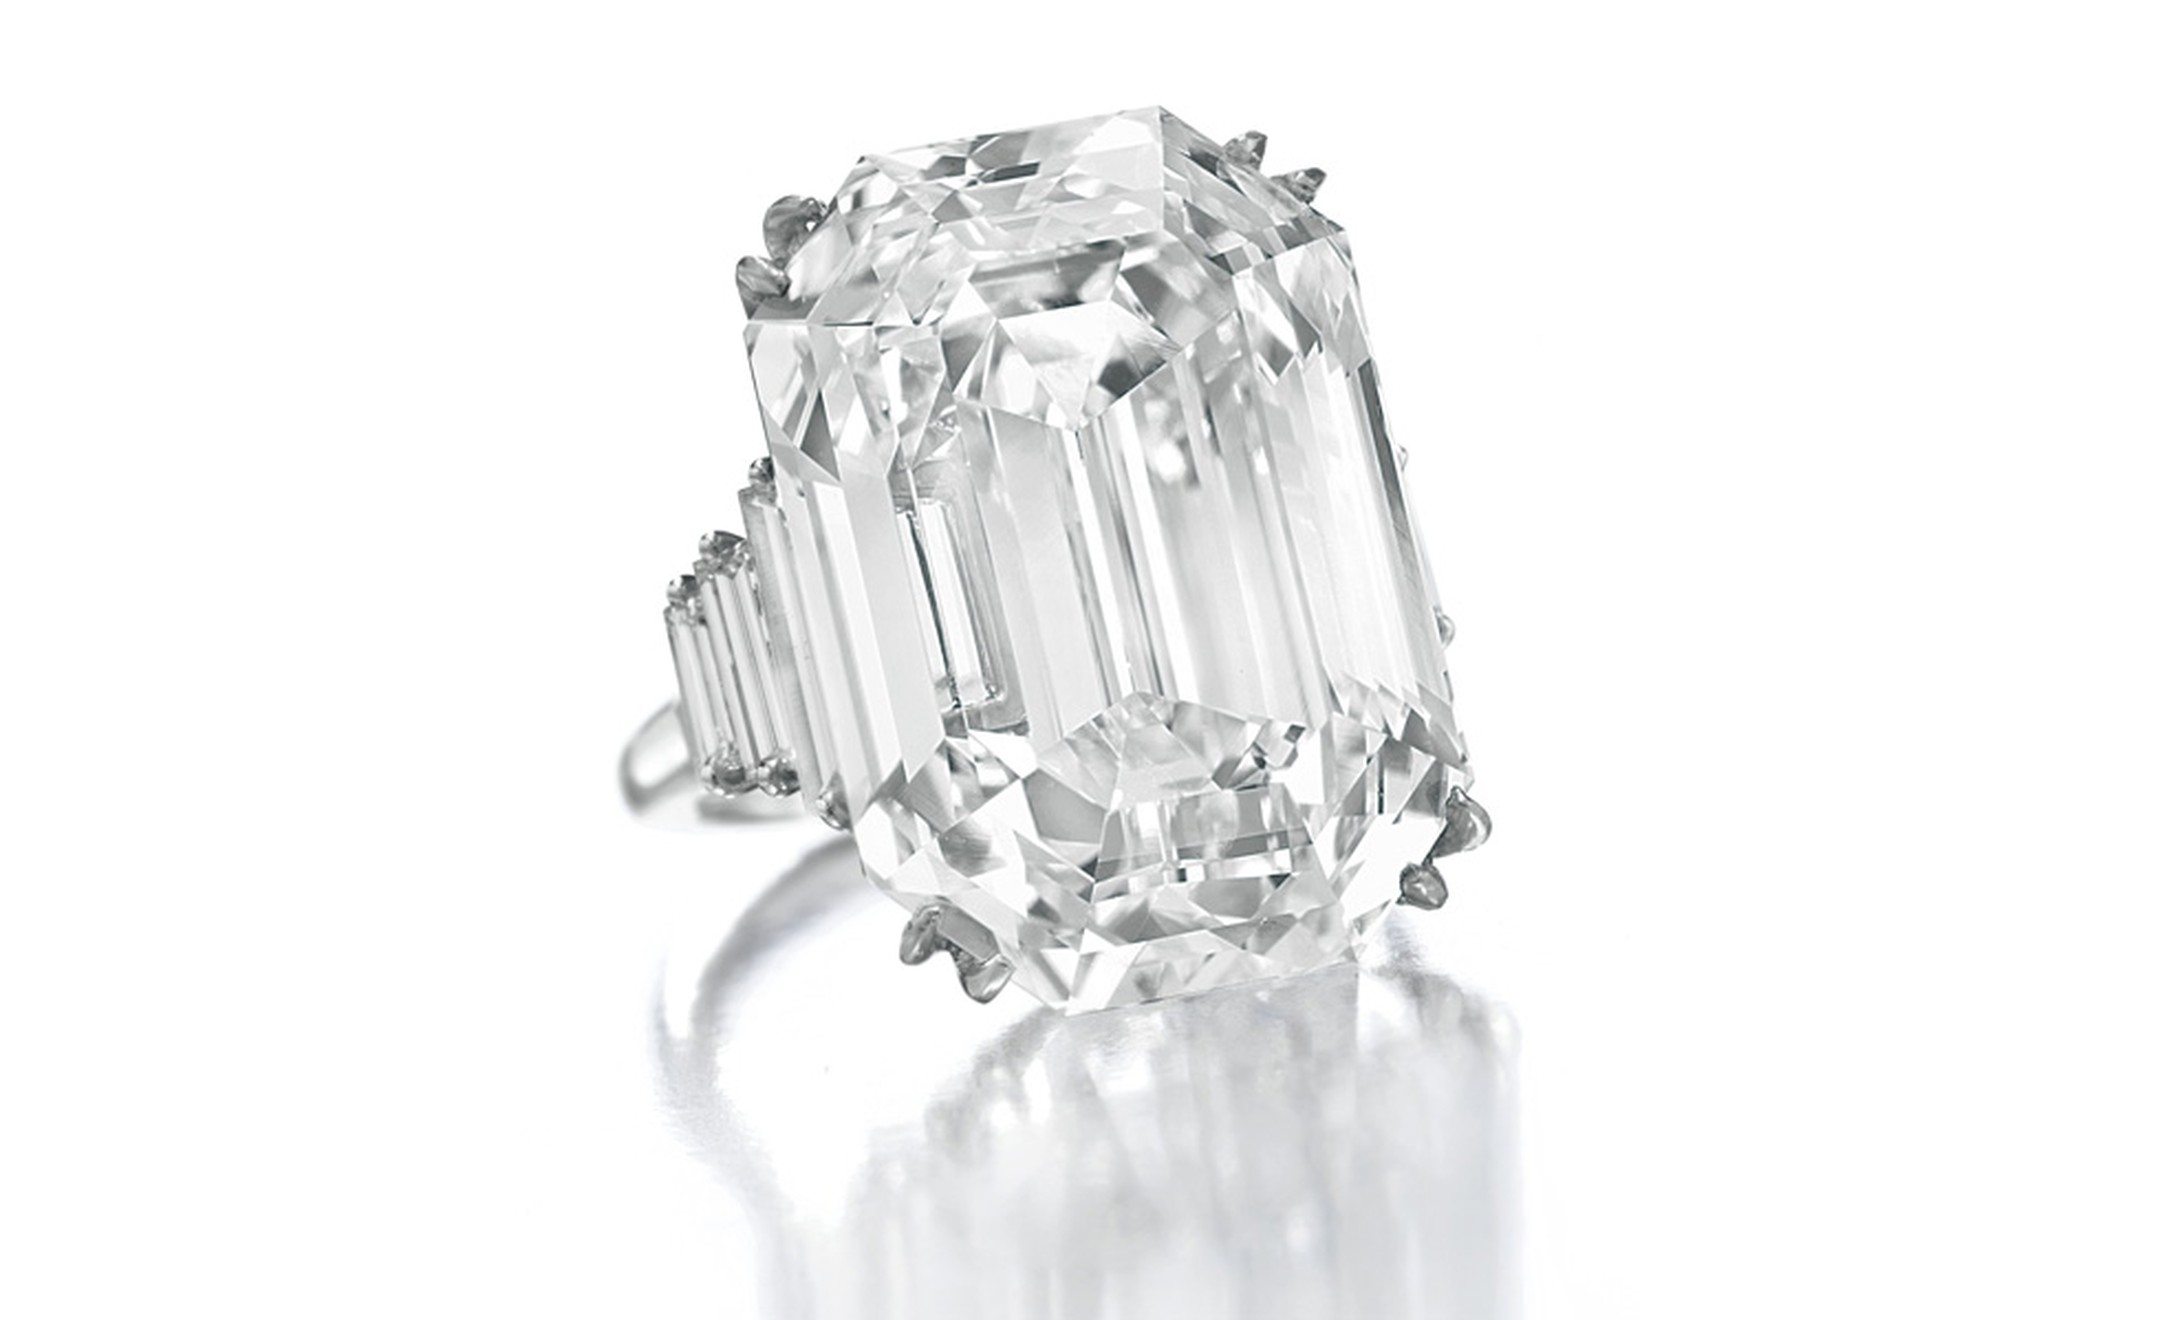 Lot 272 White diamond ring, 37.16 carats. Type IIa stone, D colour and internally flawless. Estimate $4,200,000 to $4,800,000. SOLD FOR $4.450,500. Christie's images Ltd. 2010